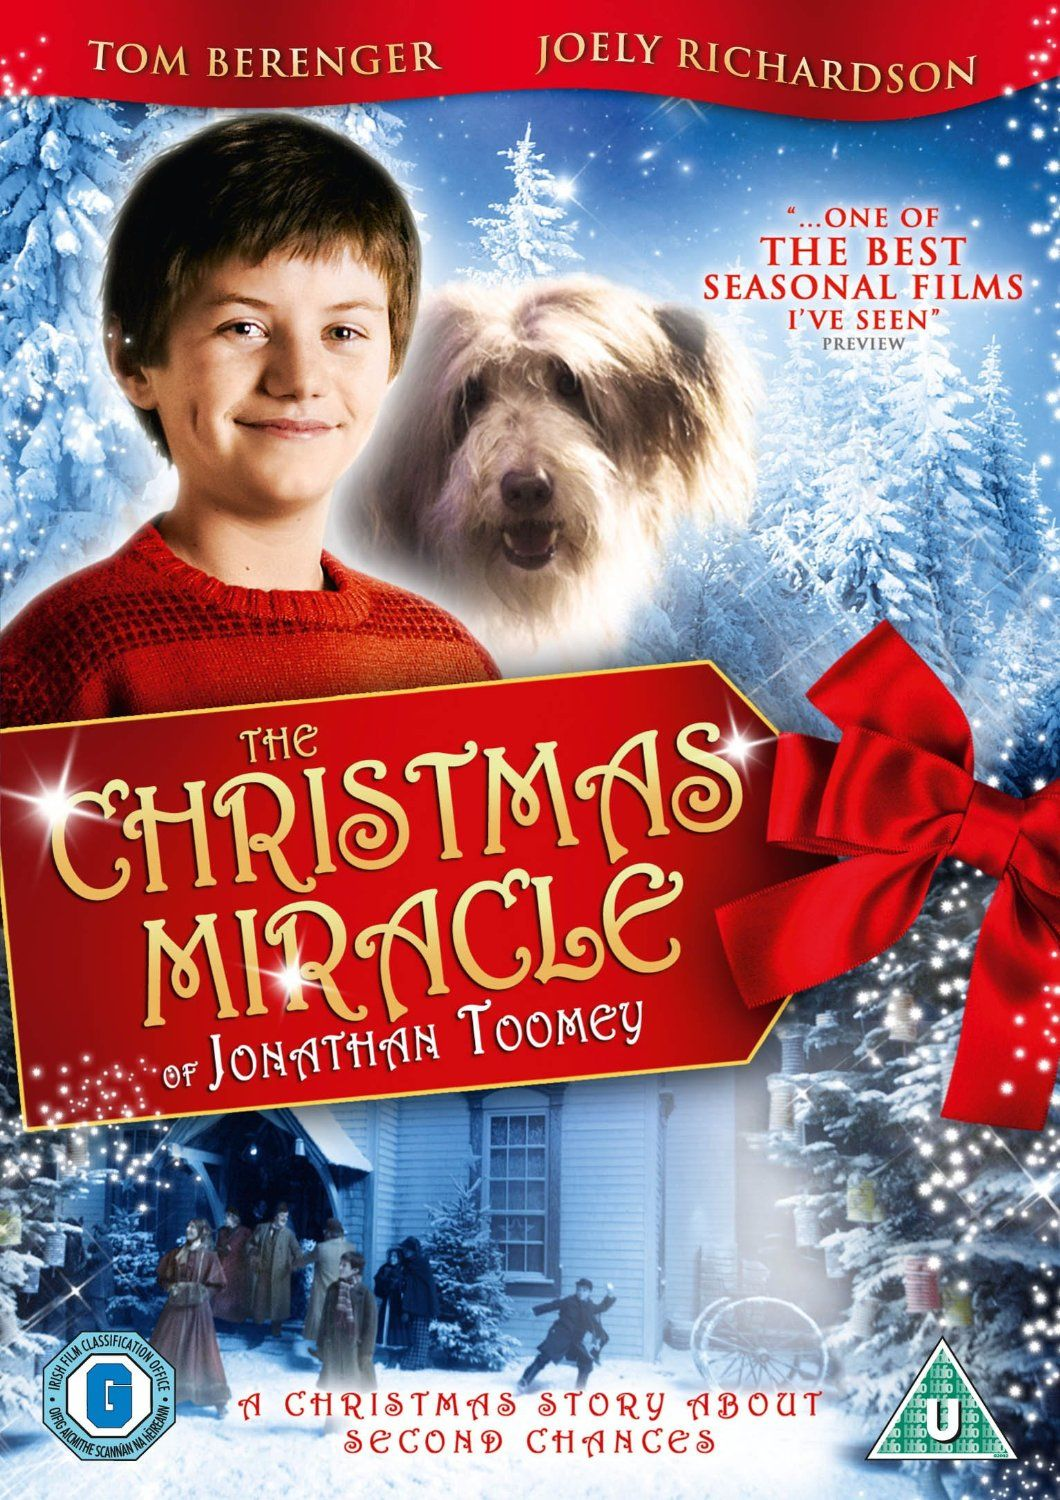 Pin By Kalinka Renauld On Christmas Films Including Animation Christmas Music Full Movies Online Free Animated Christmas Streaming Movies